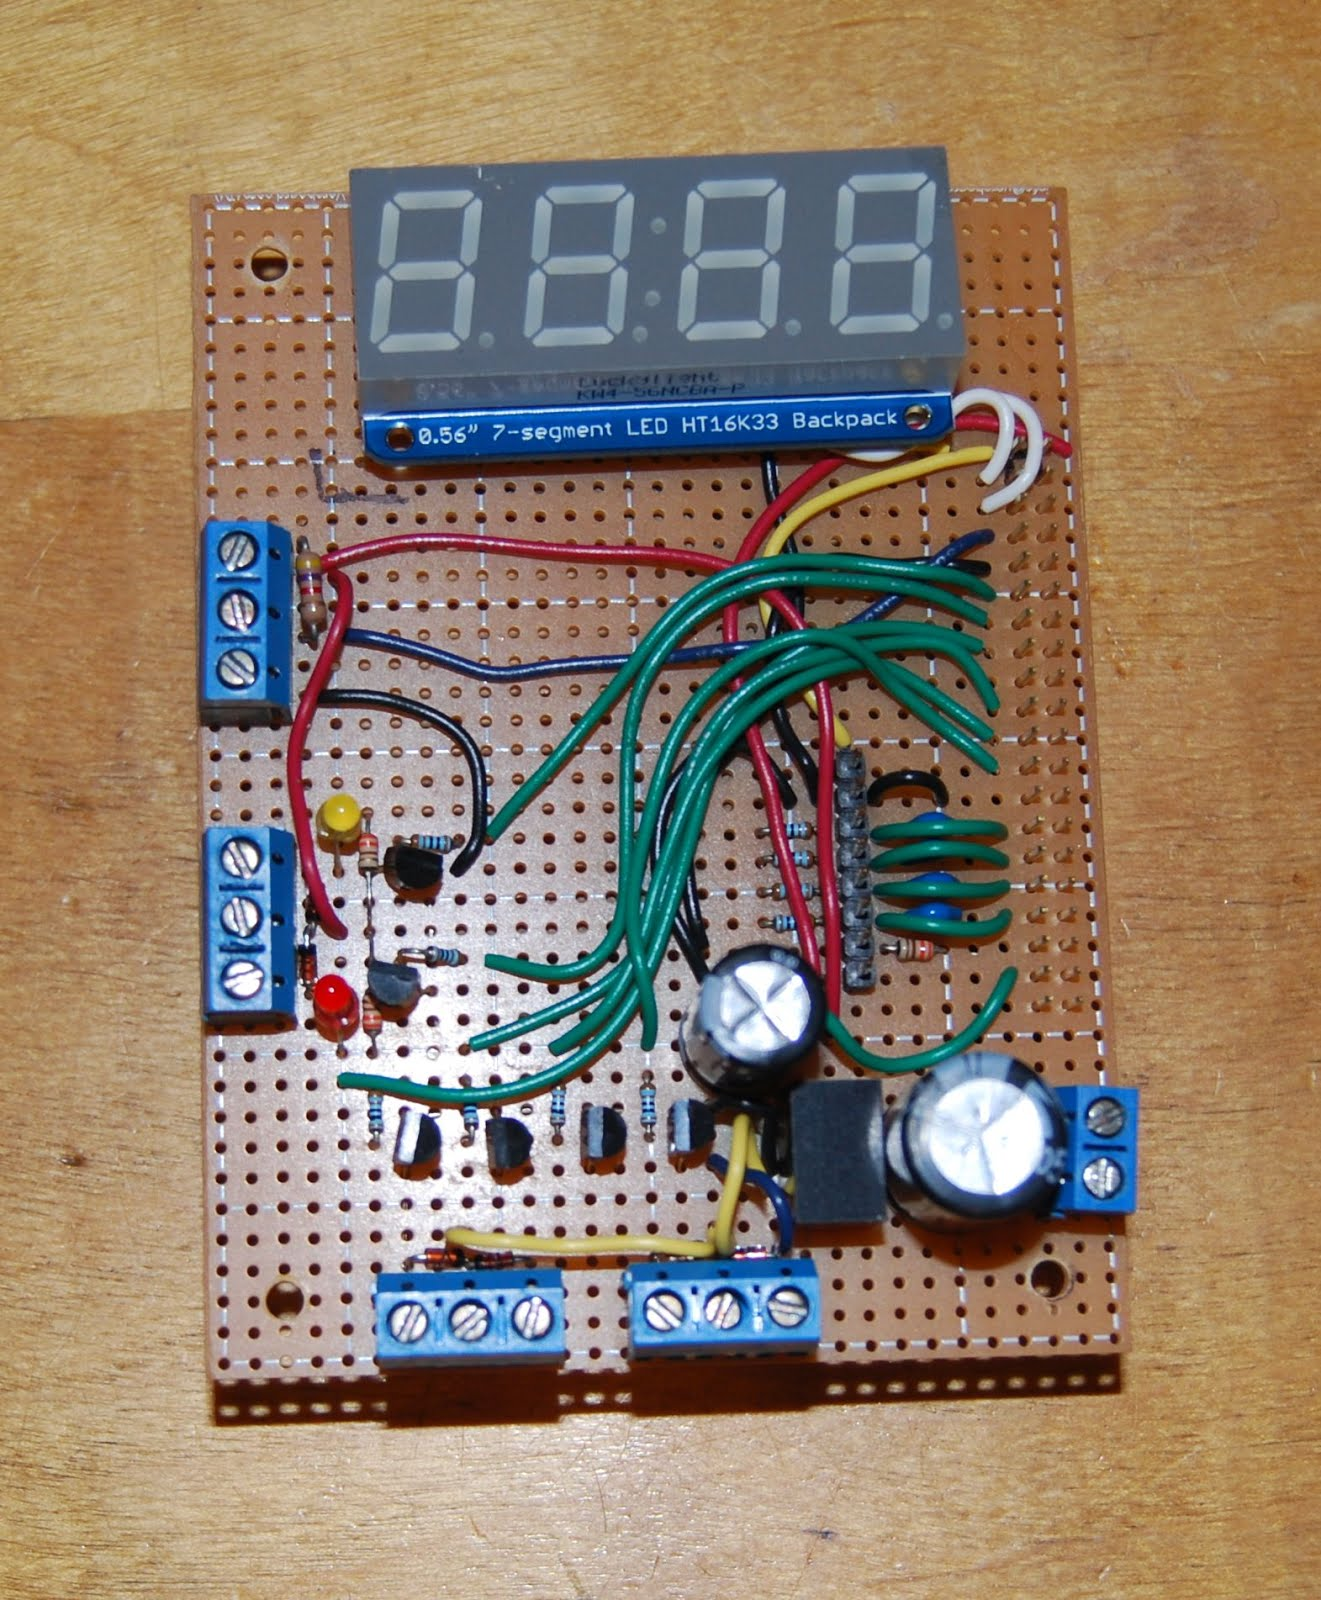 small resolution of hot tub controller circuit board